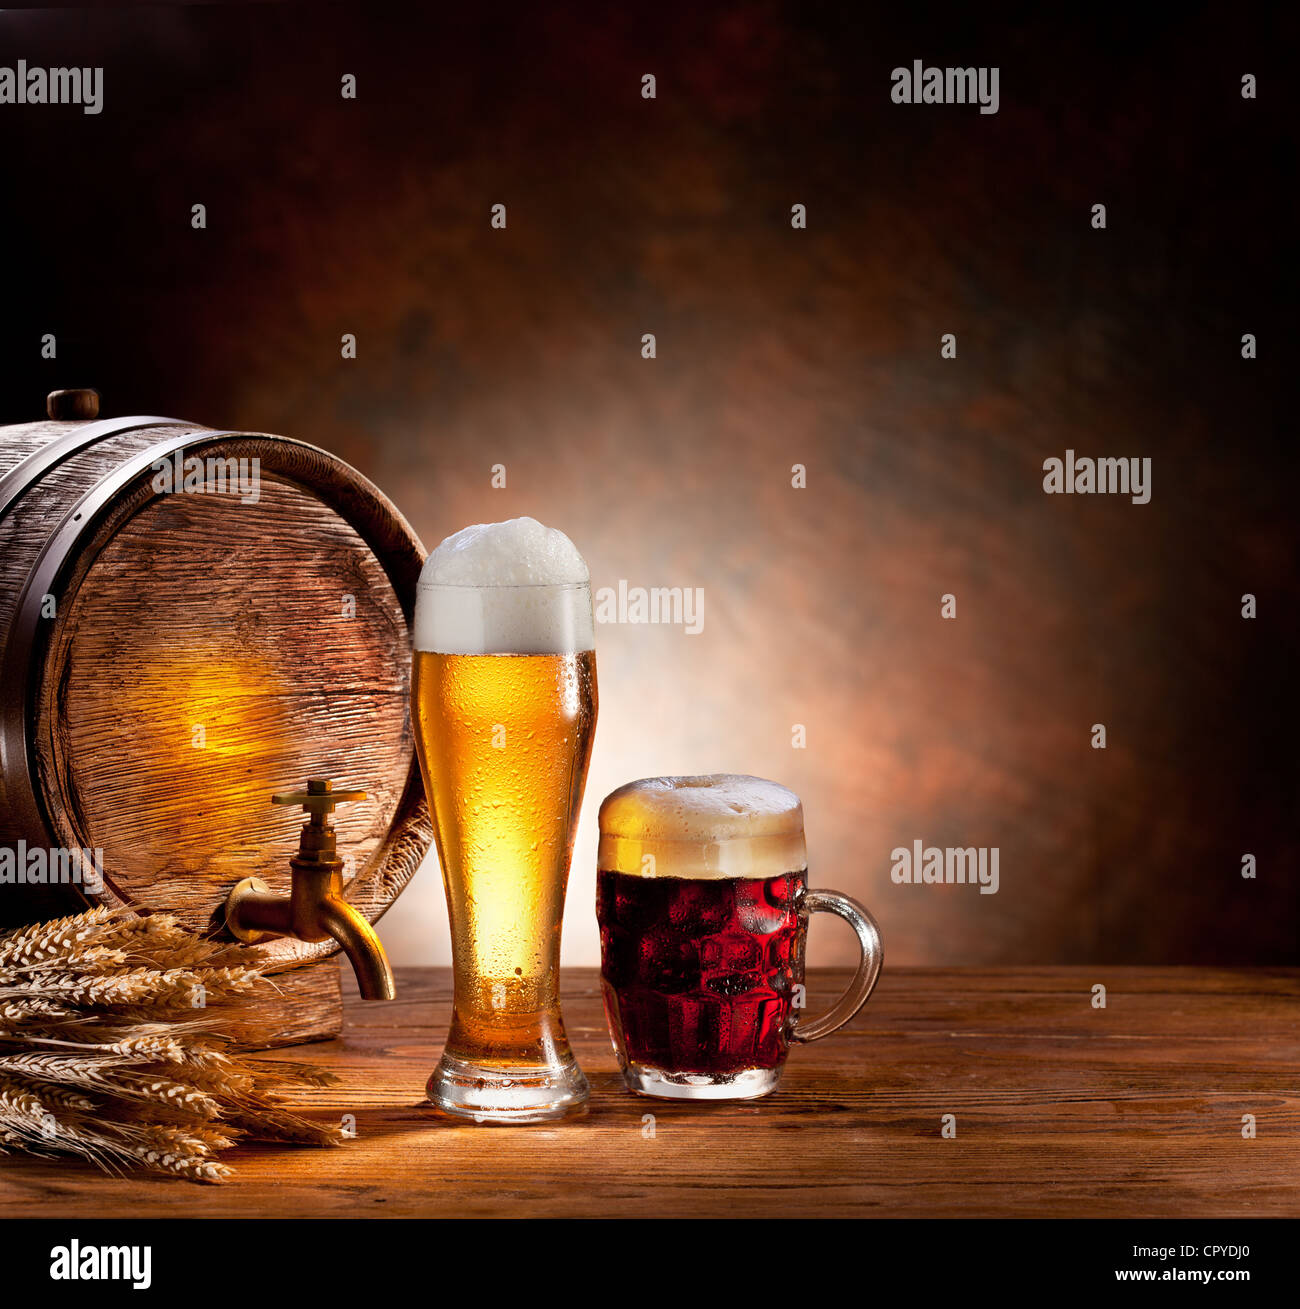 Beer barrel with beer glasses on a wooden table. The dark background. - Stock Image